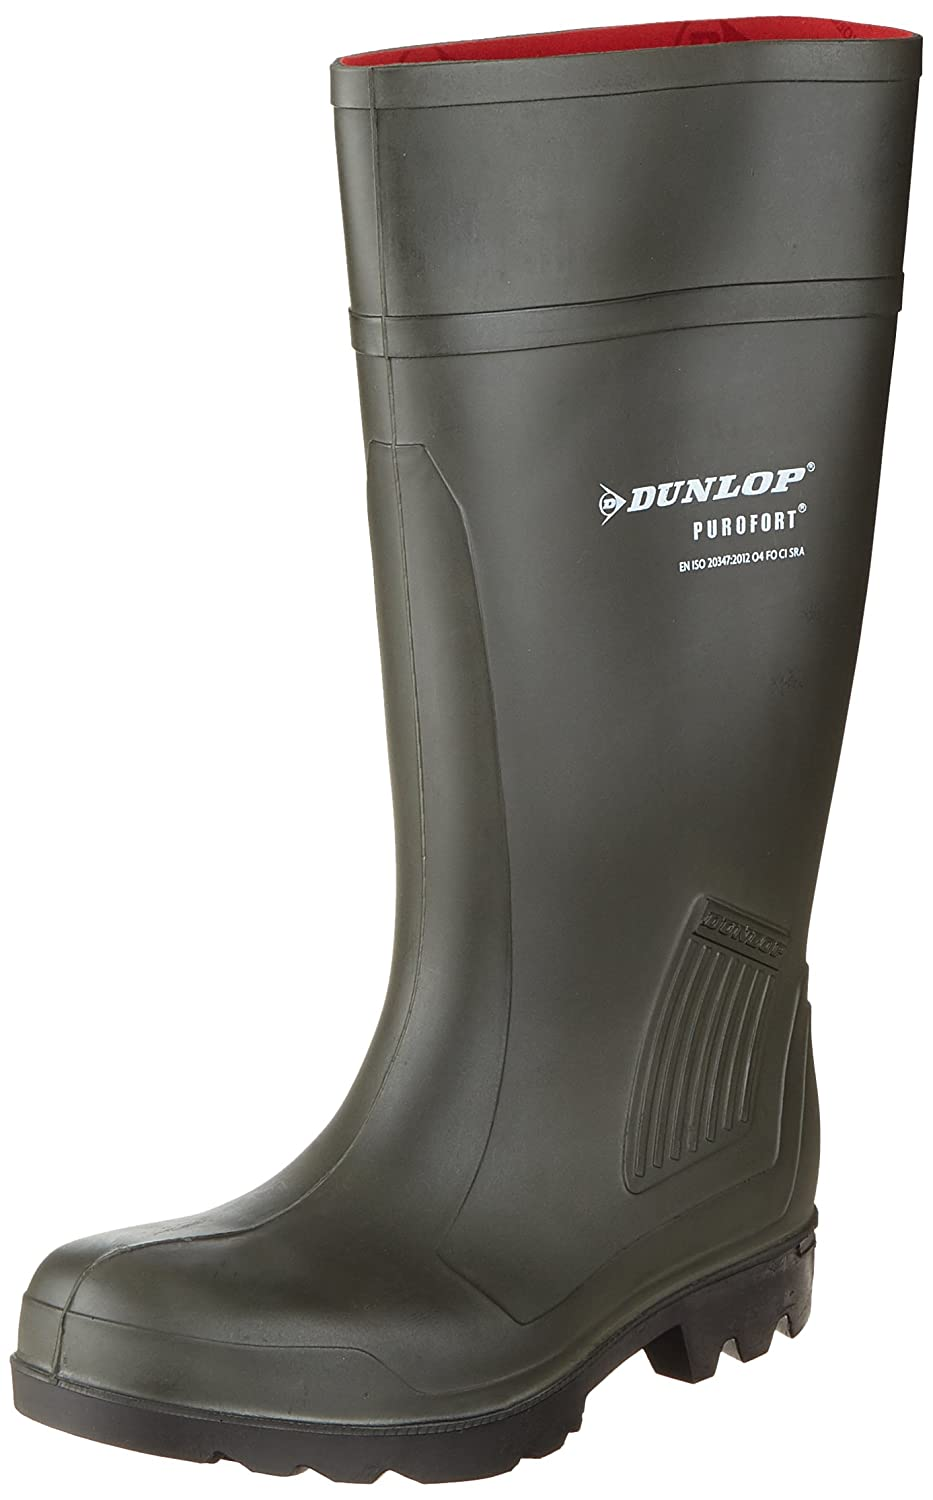 Dunlop Pull-On Self-Lined Wellingtons - Green - Size 39 40 41 42 43 44